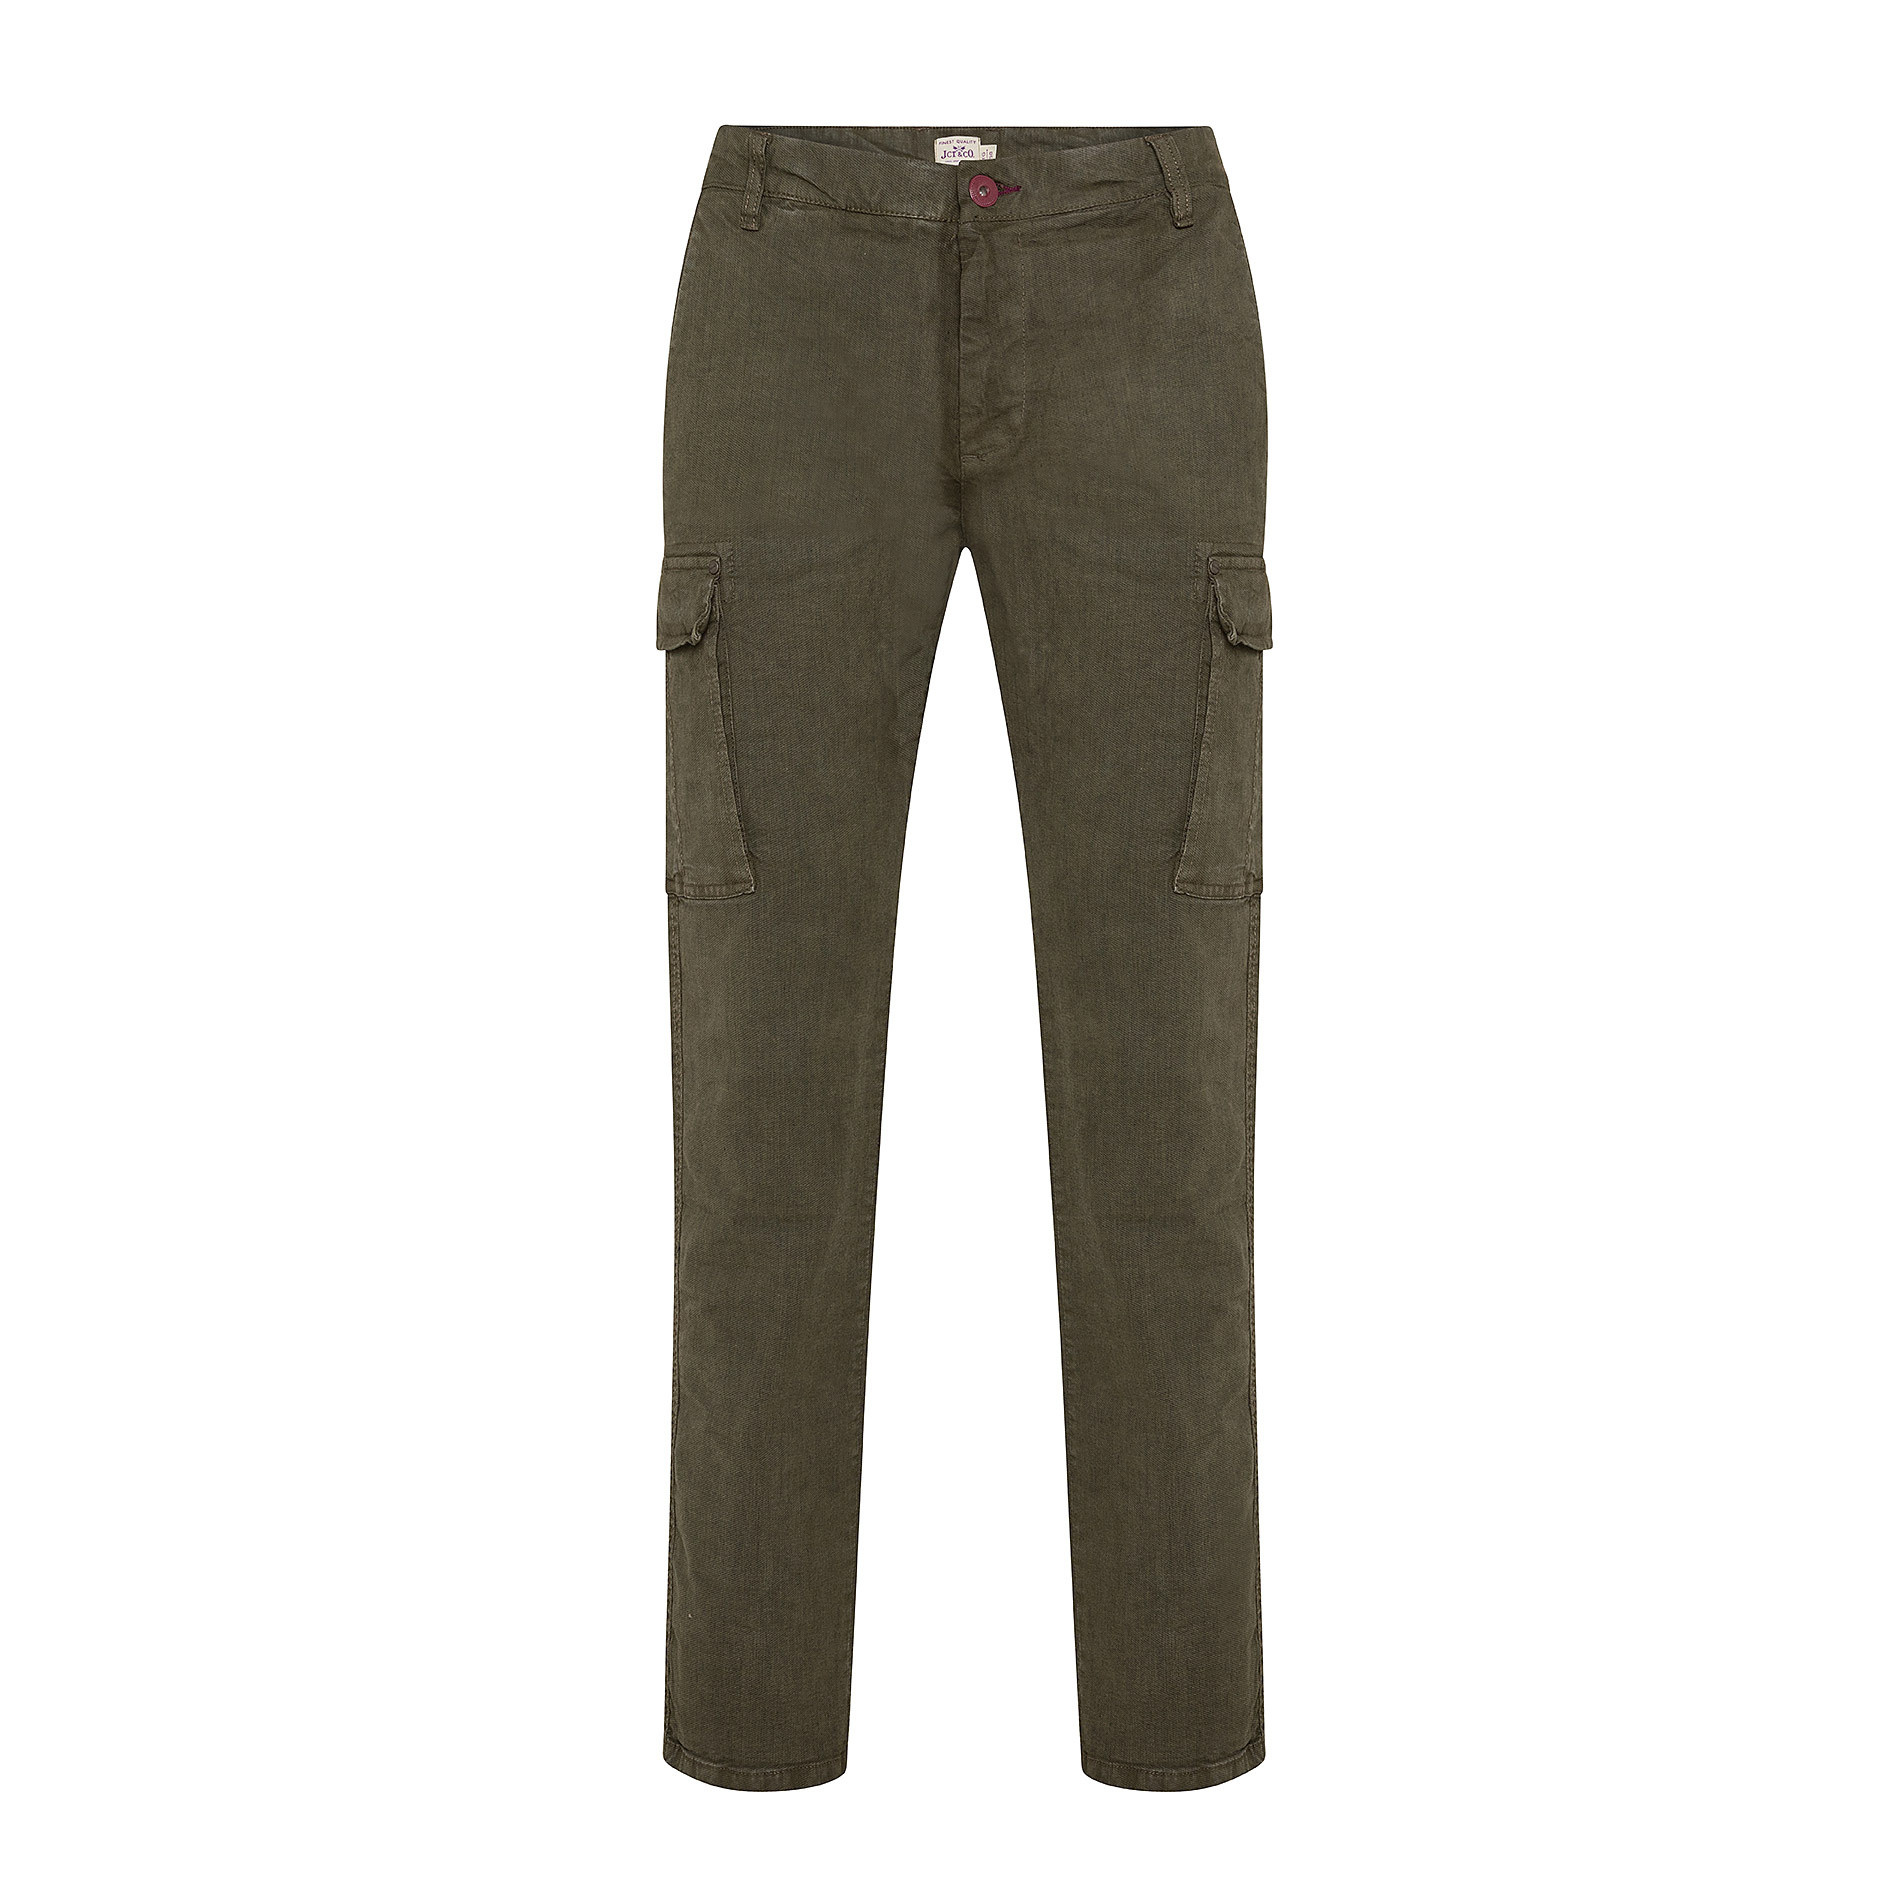 Pantalone cargo stretch con tasche, Verde scuro, large image number 0